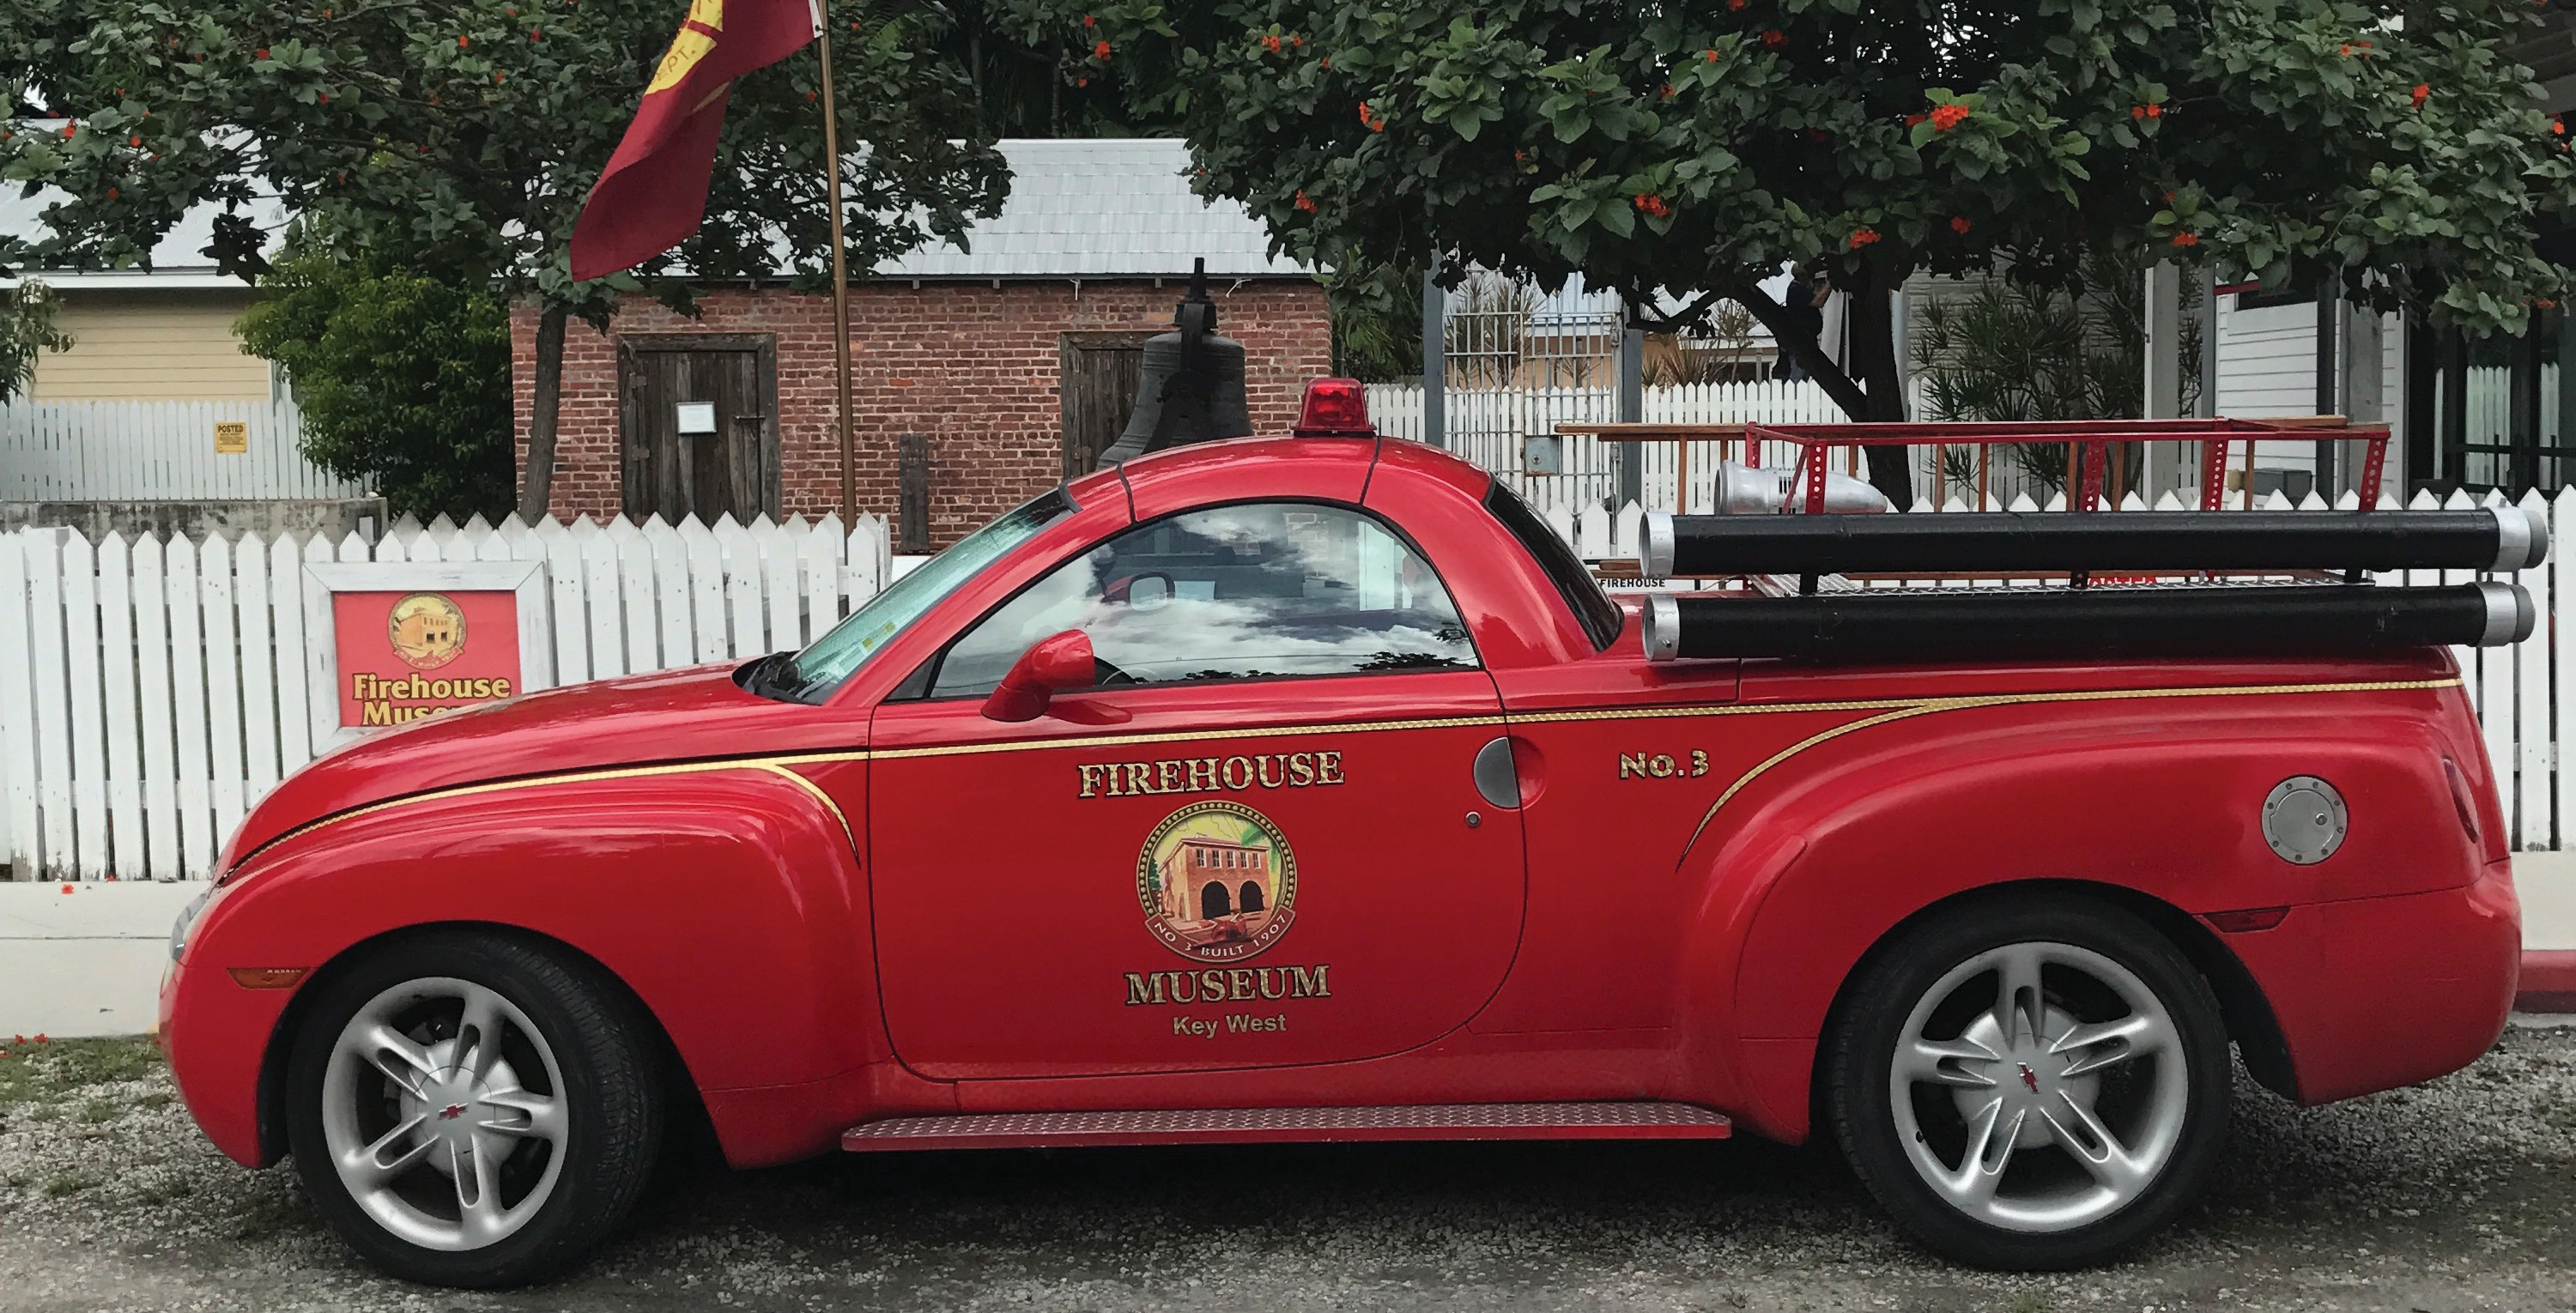 The Firehouse Museum is open Tuesday-Saturday from 10 a.m. to 3 p.m.